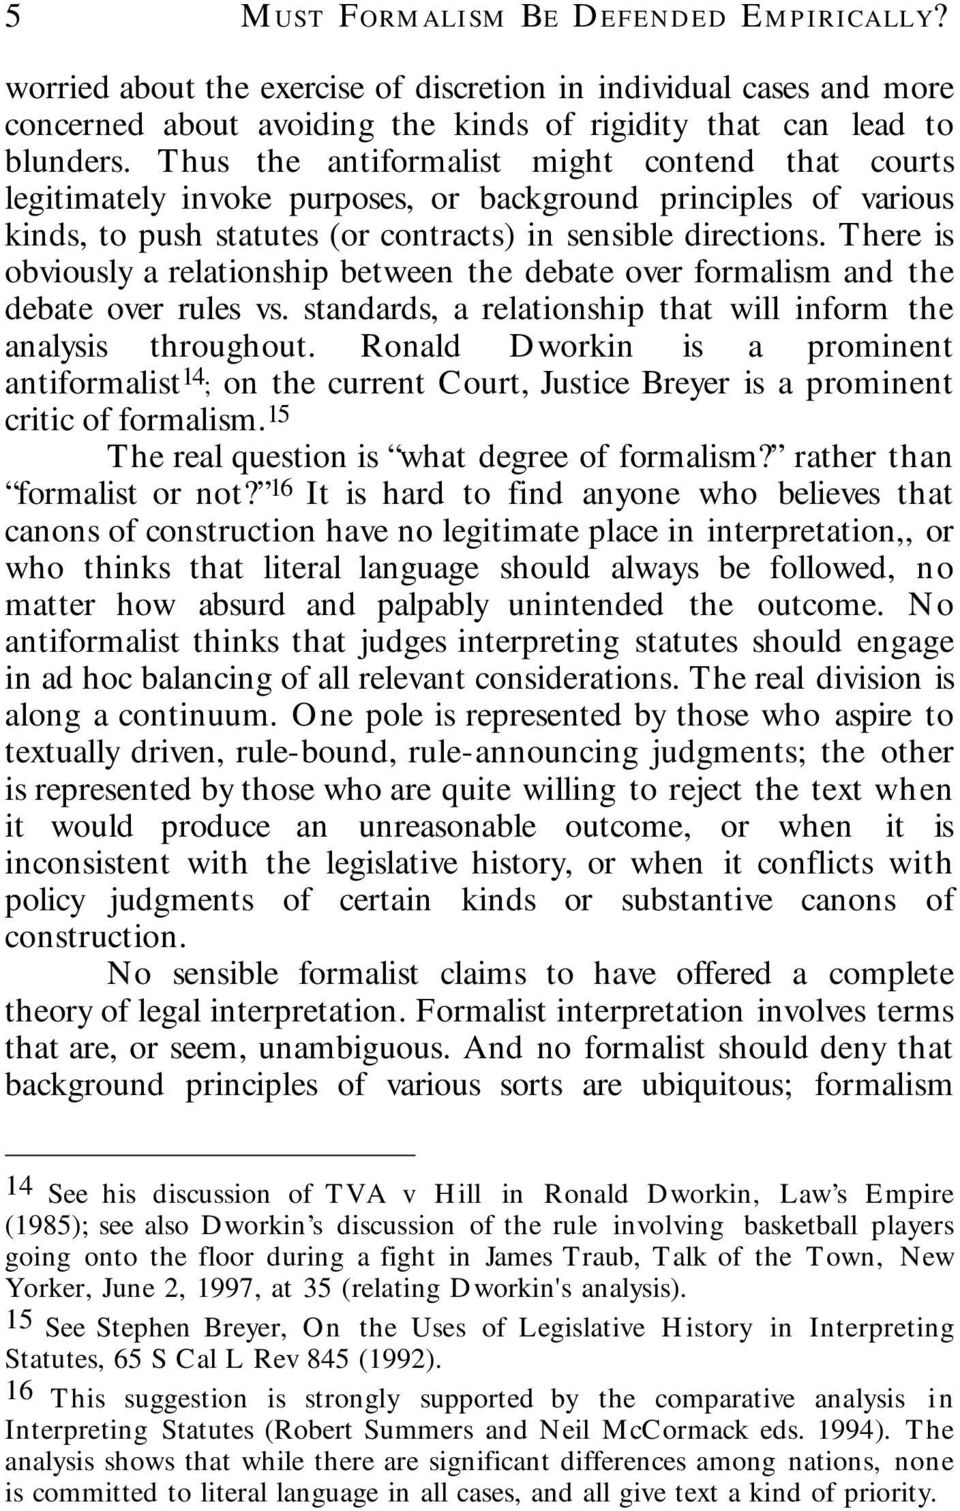 There is obviously a relationship between the debate over formalism and the debate over rules vs. standards, a relationship that will inform the analysis throughout.